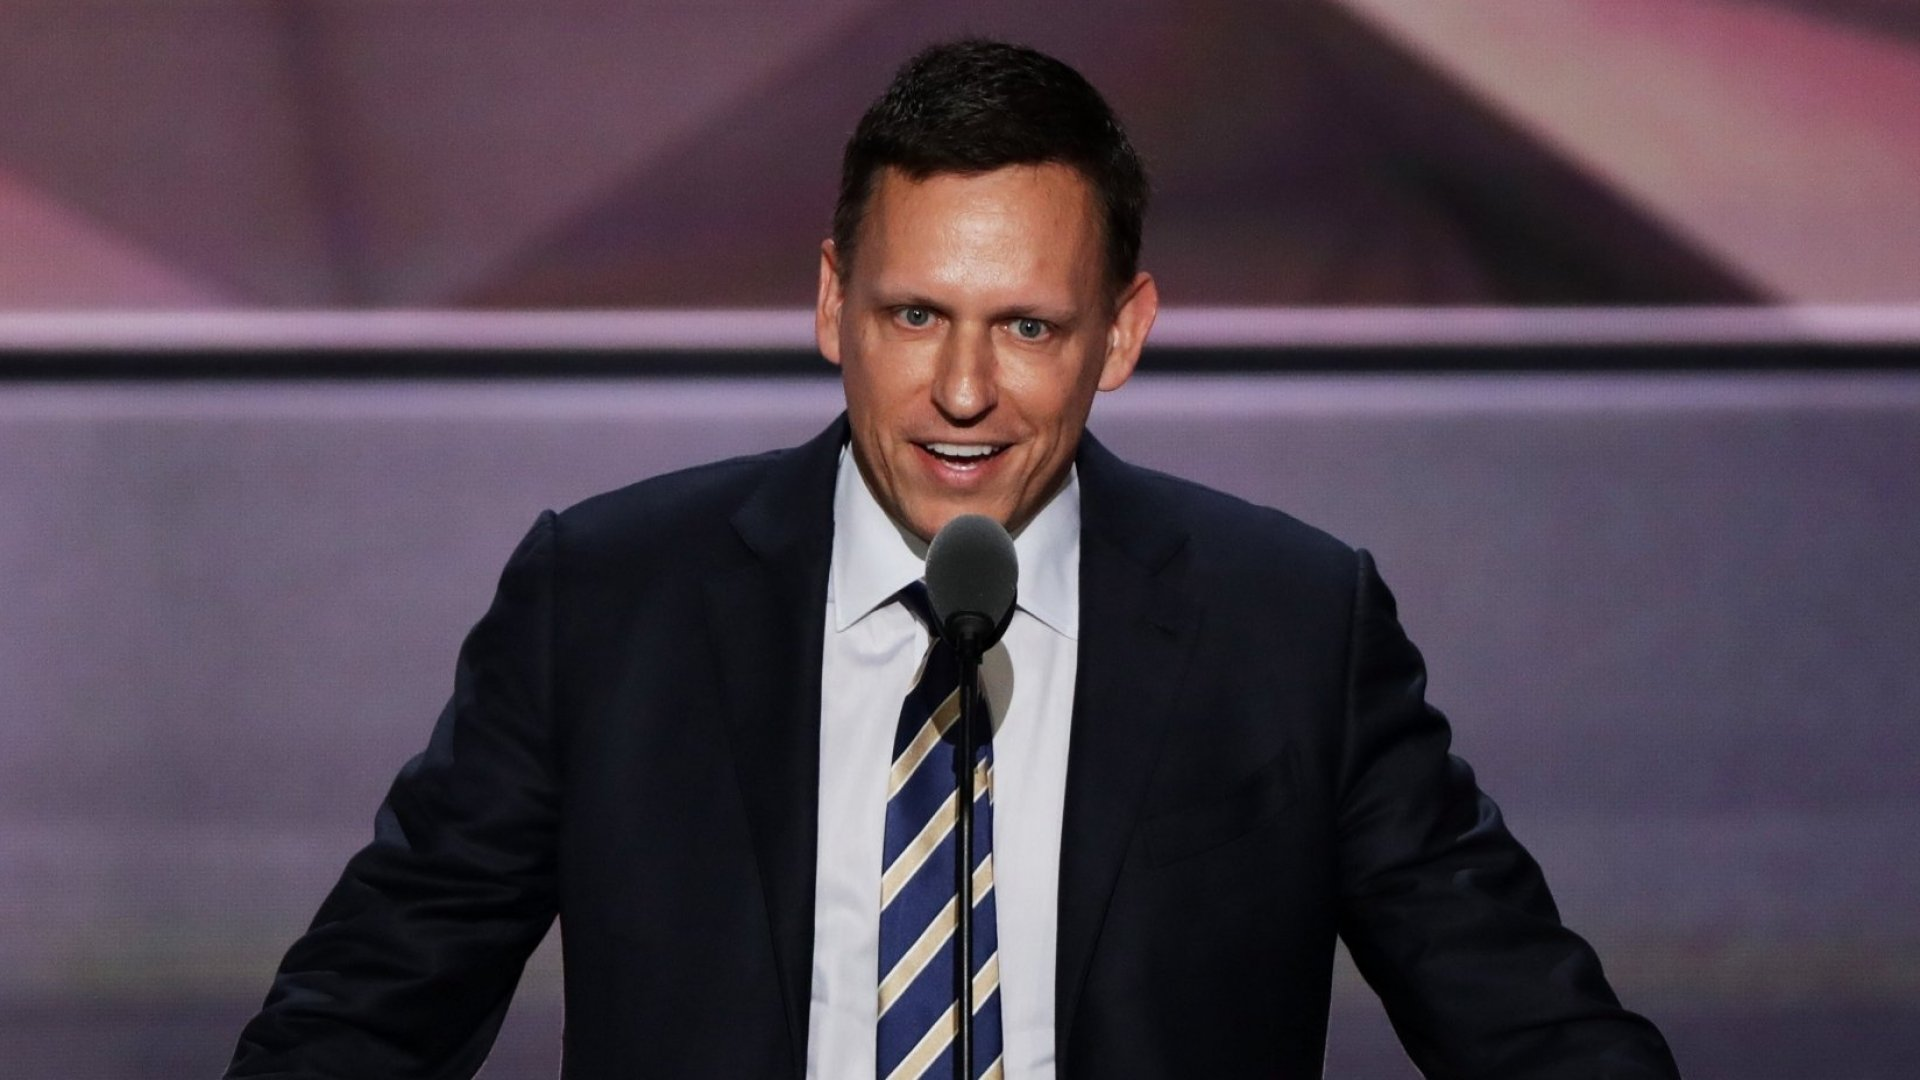 How Peter Thiel Became a Silicon Valley Pariah